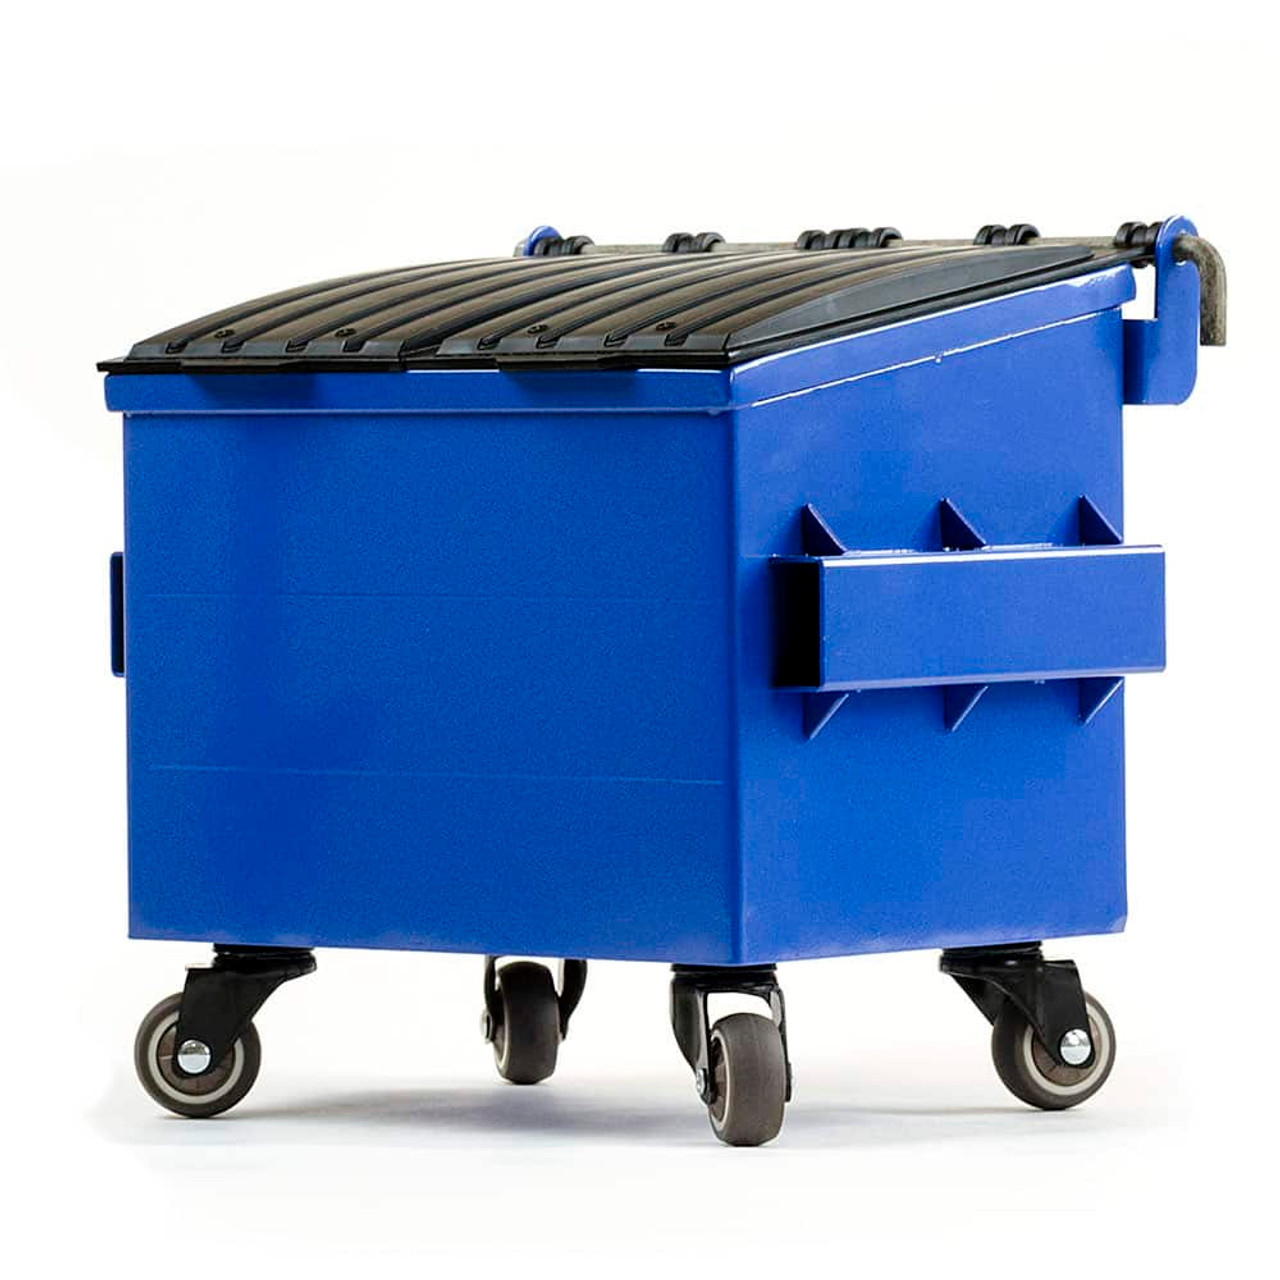 Dumpsty Desk Top Steel Mini Dumpster RECYCLE BLUE